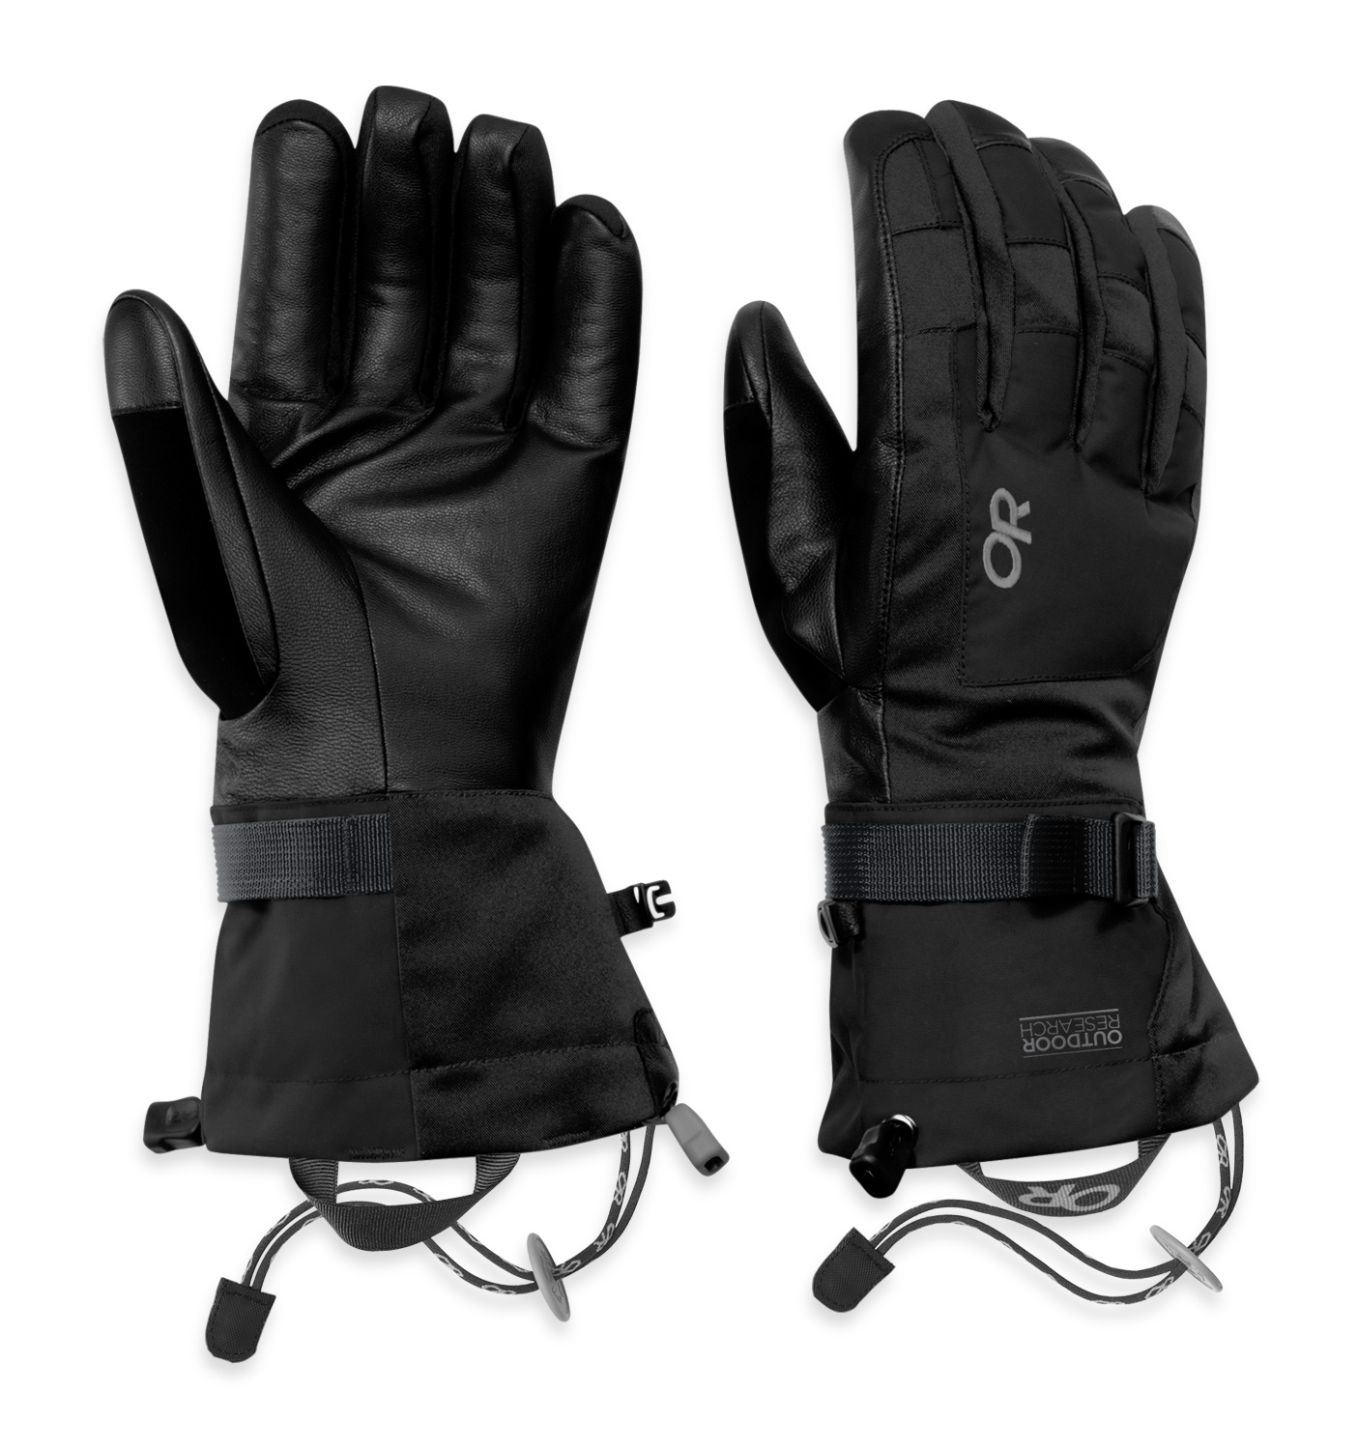 Outdoor Research Men's Revolution Gloves black-30